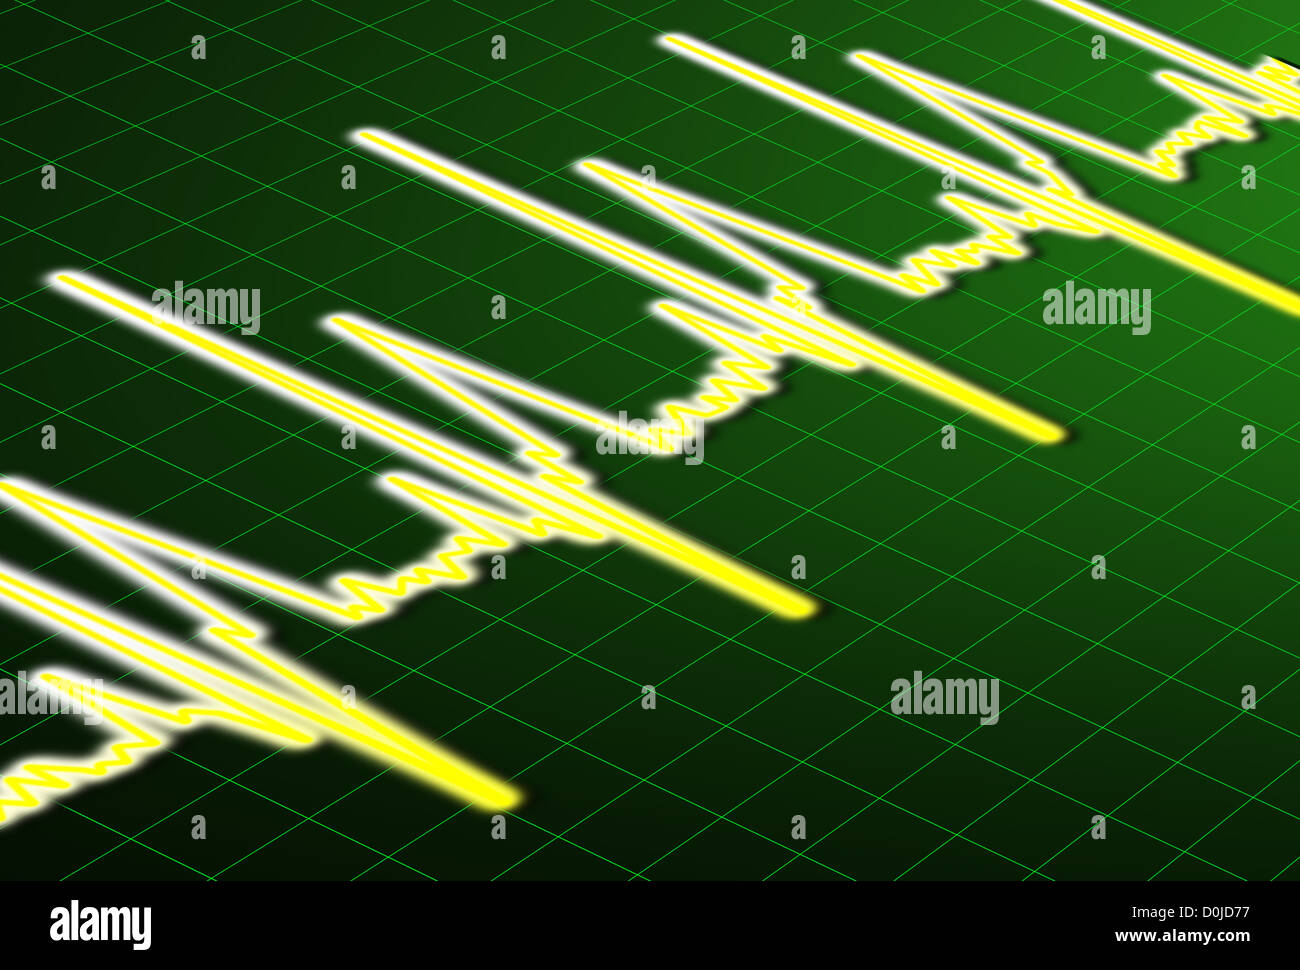 Ecg - heart beat impulse line Photo Stock